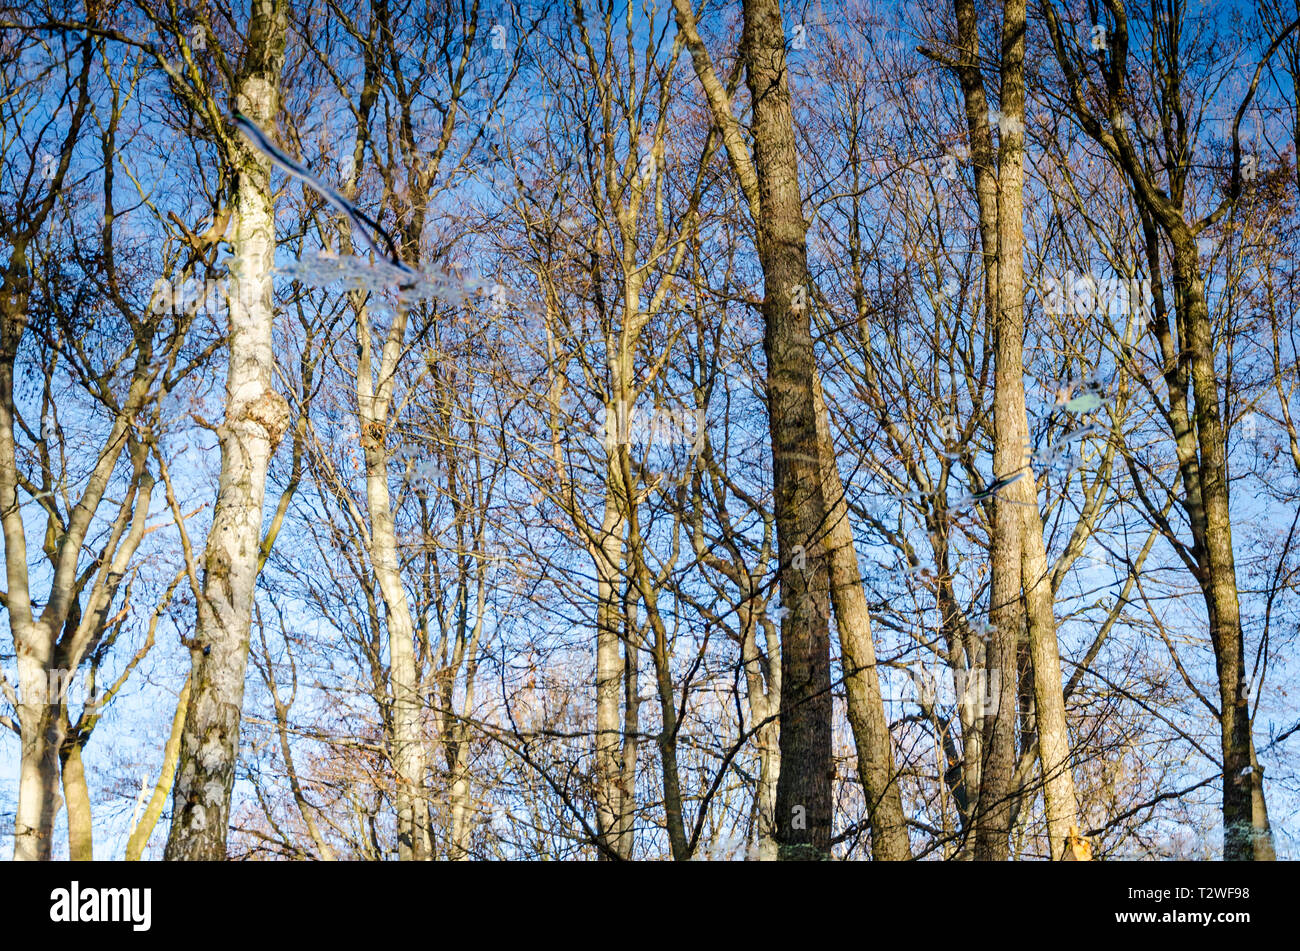 Abstract view of trees reflected in still water, Tiergarten, Berlin, Germany - Stock Image